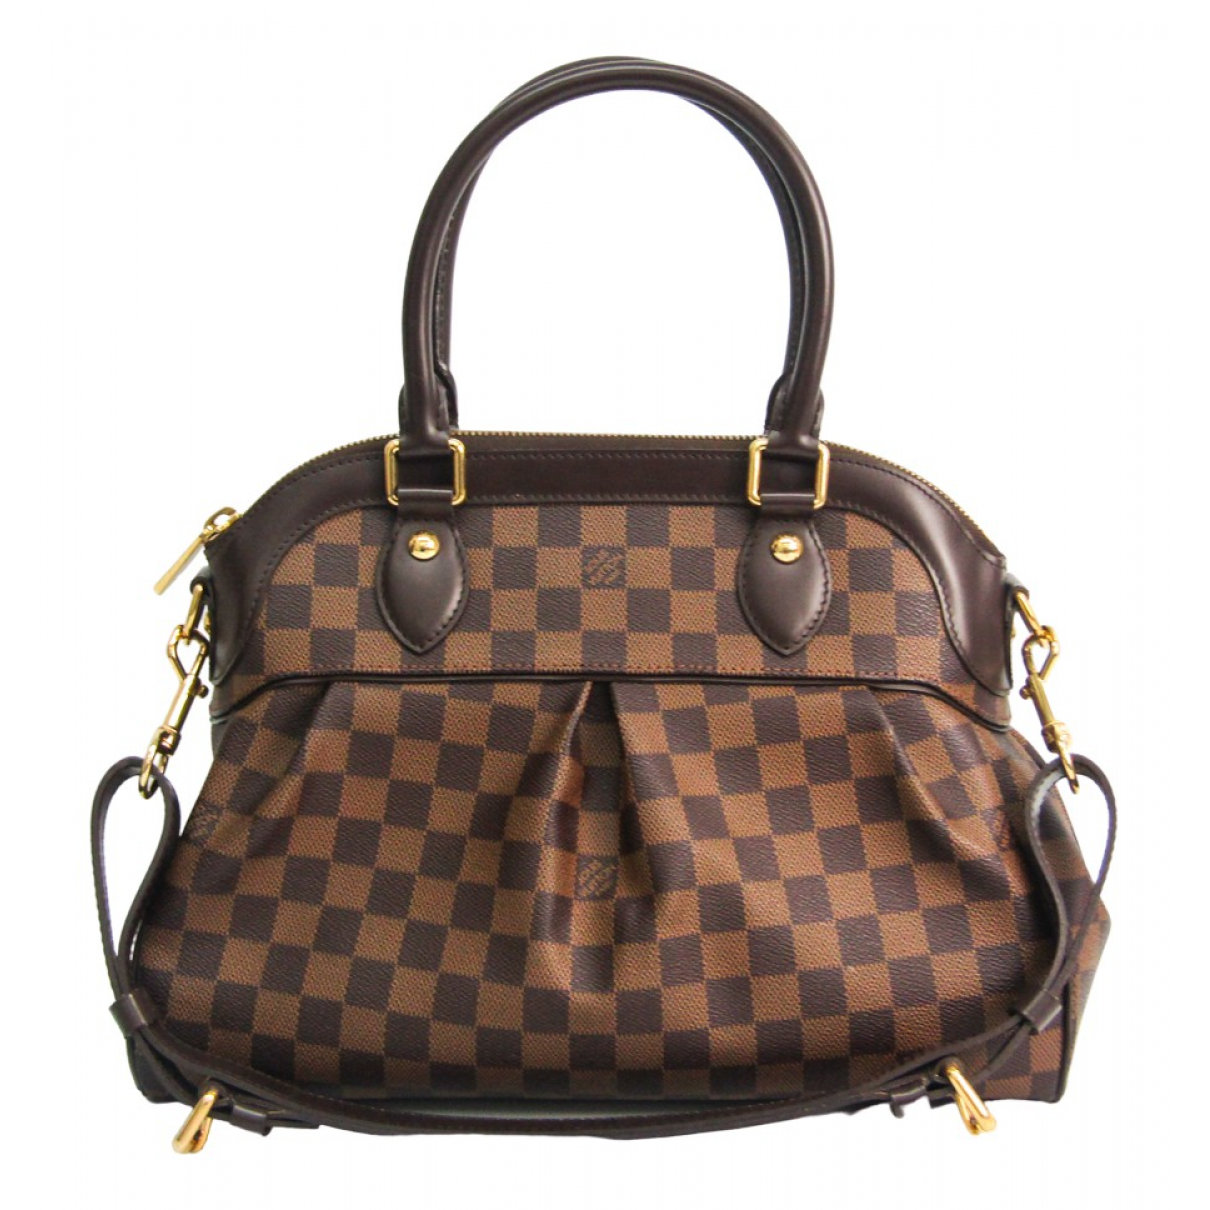 Louis Vuitton Trevi Handtasche in  Braun Leinen